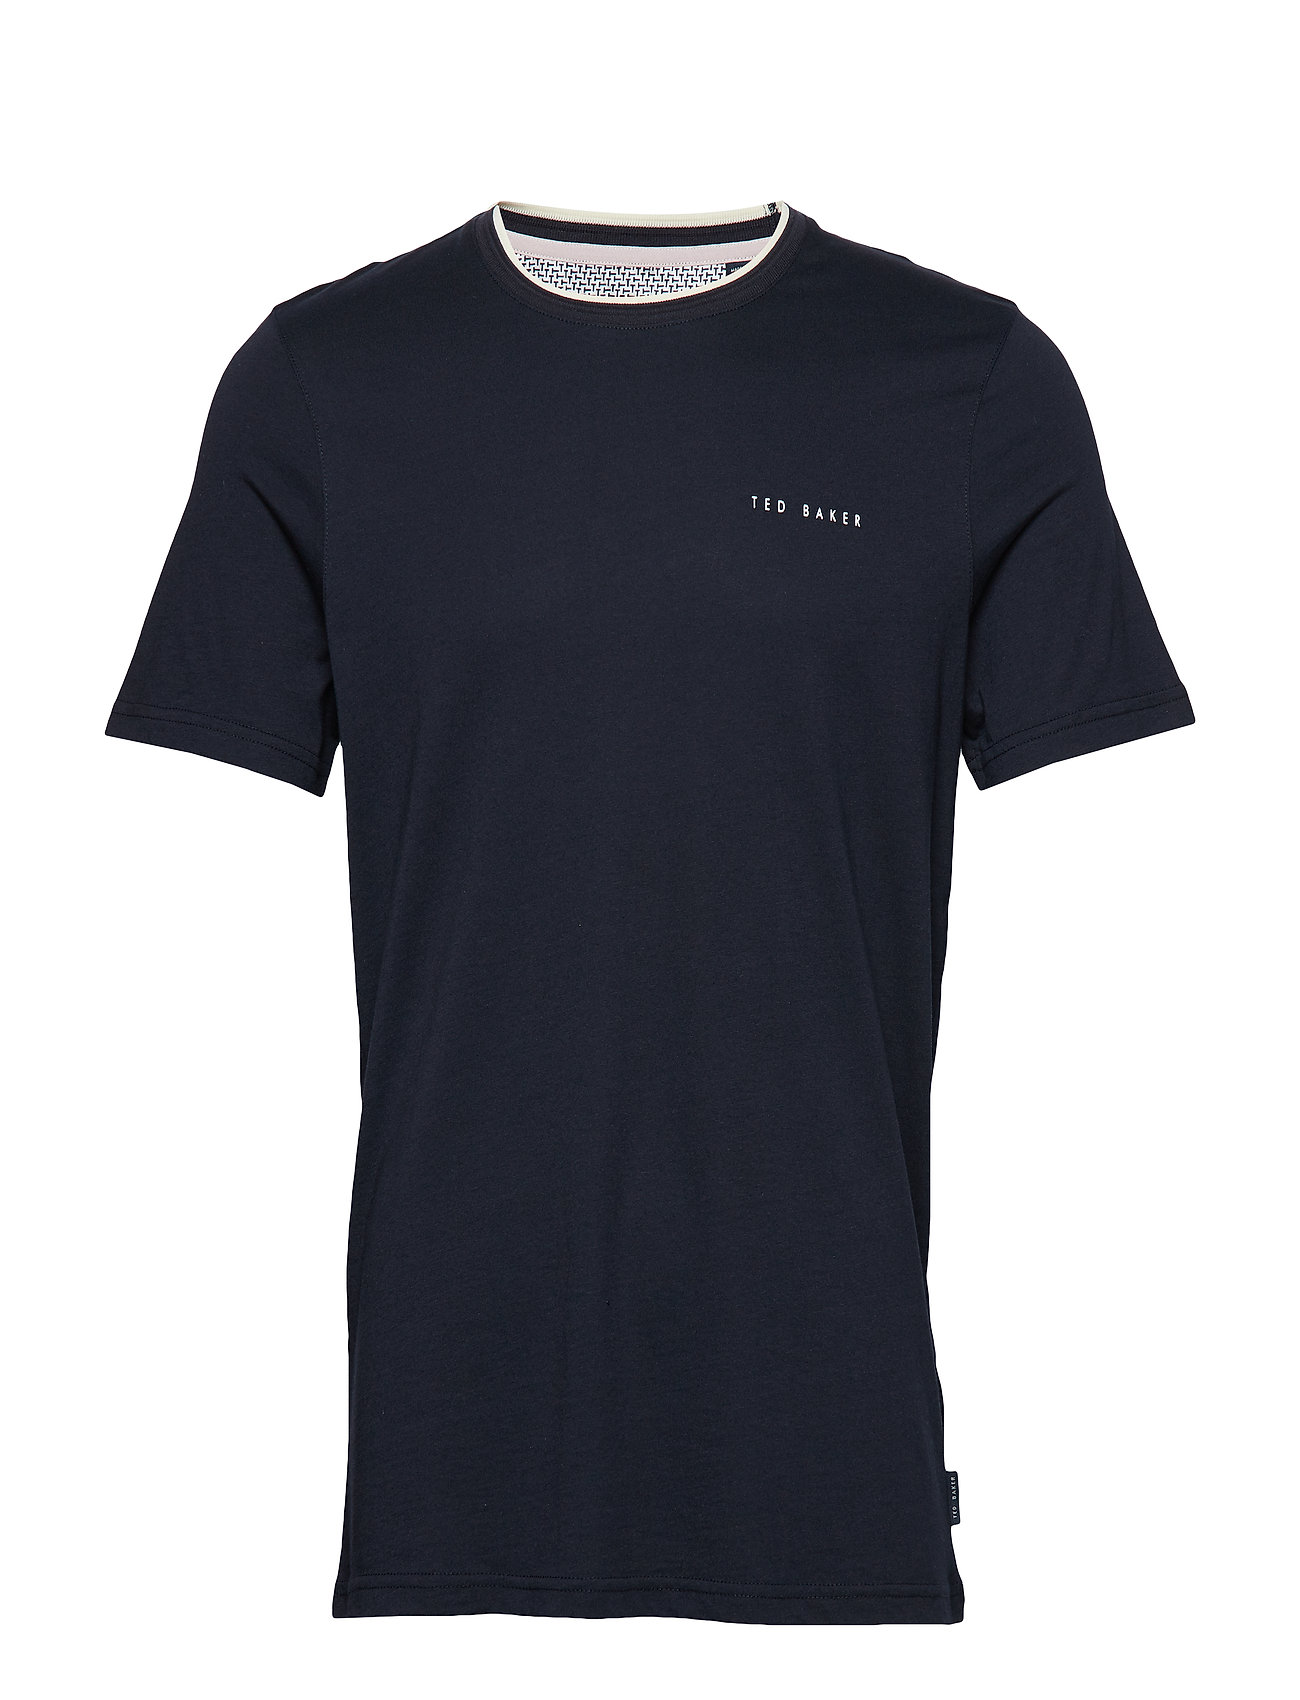 Ted Baker ROOMA - 10 NAVY